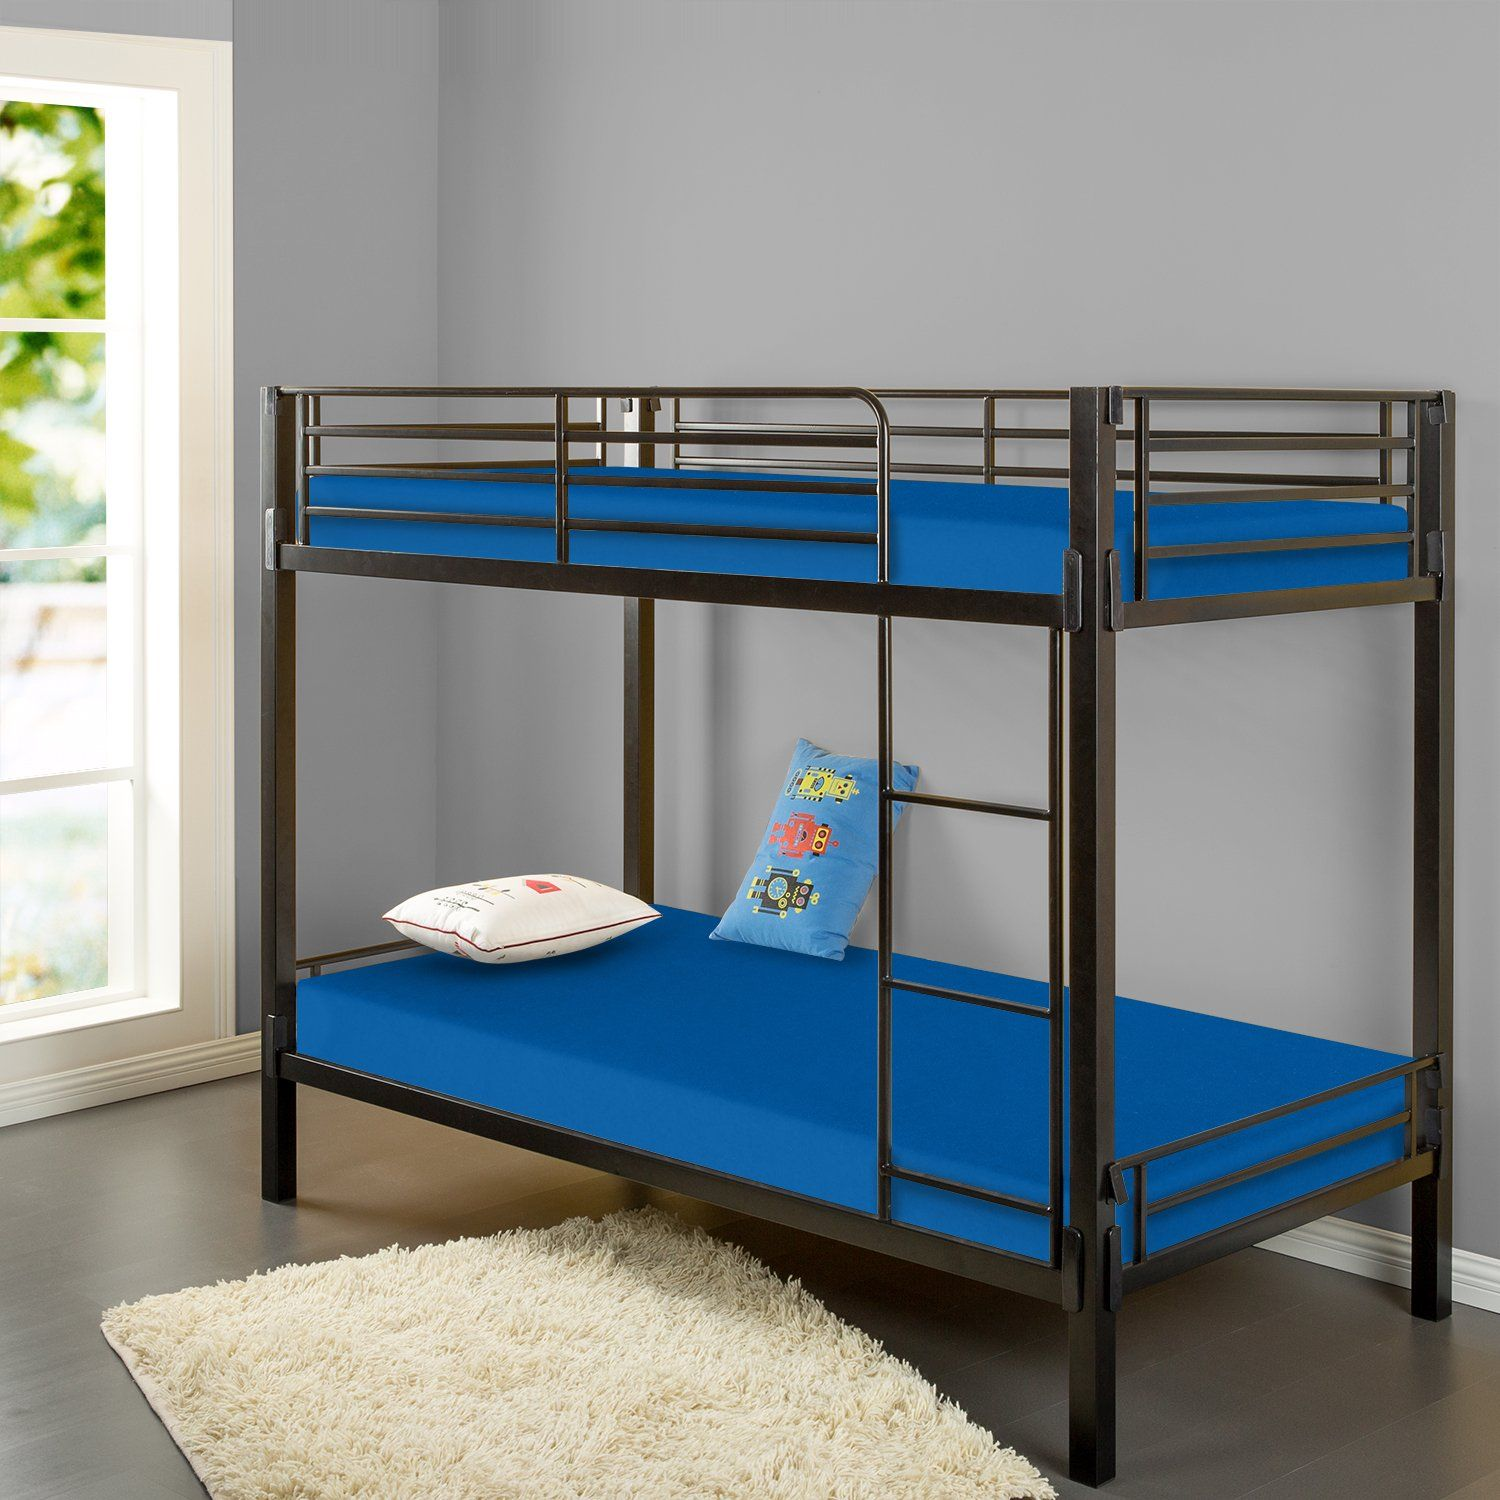 Zinus Memory Foam 5 Inch Bunk Bed Trundle Bed Day Bed Mattress Twin Blue Affiliate Mattress Bunk Bed Mattress Cool Bunk Beds Bunk Beds